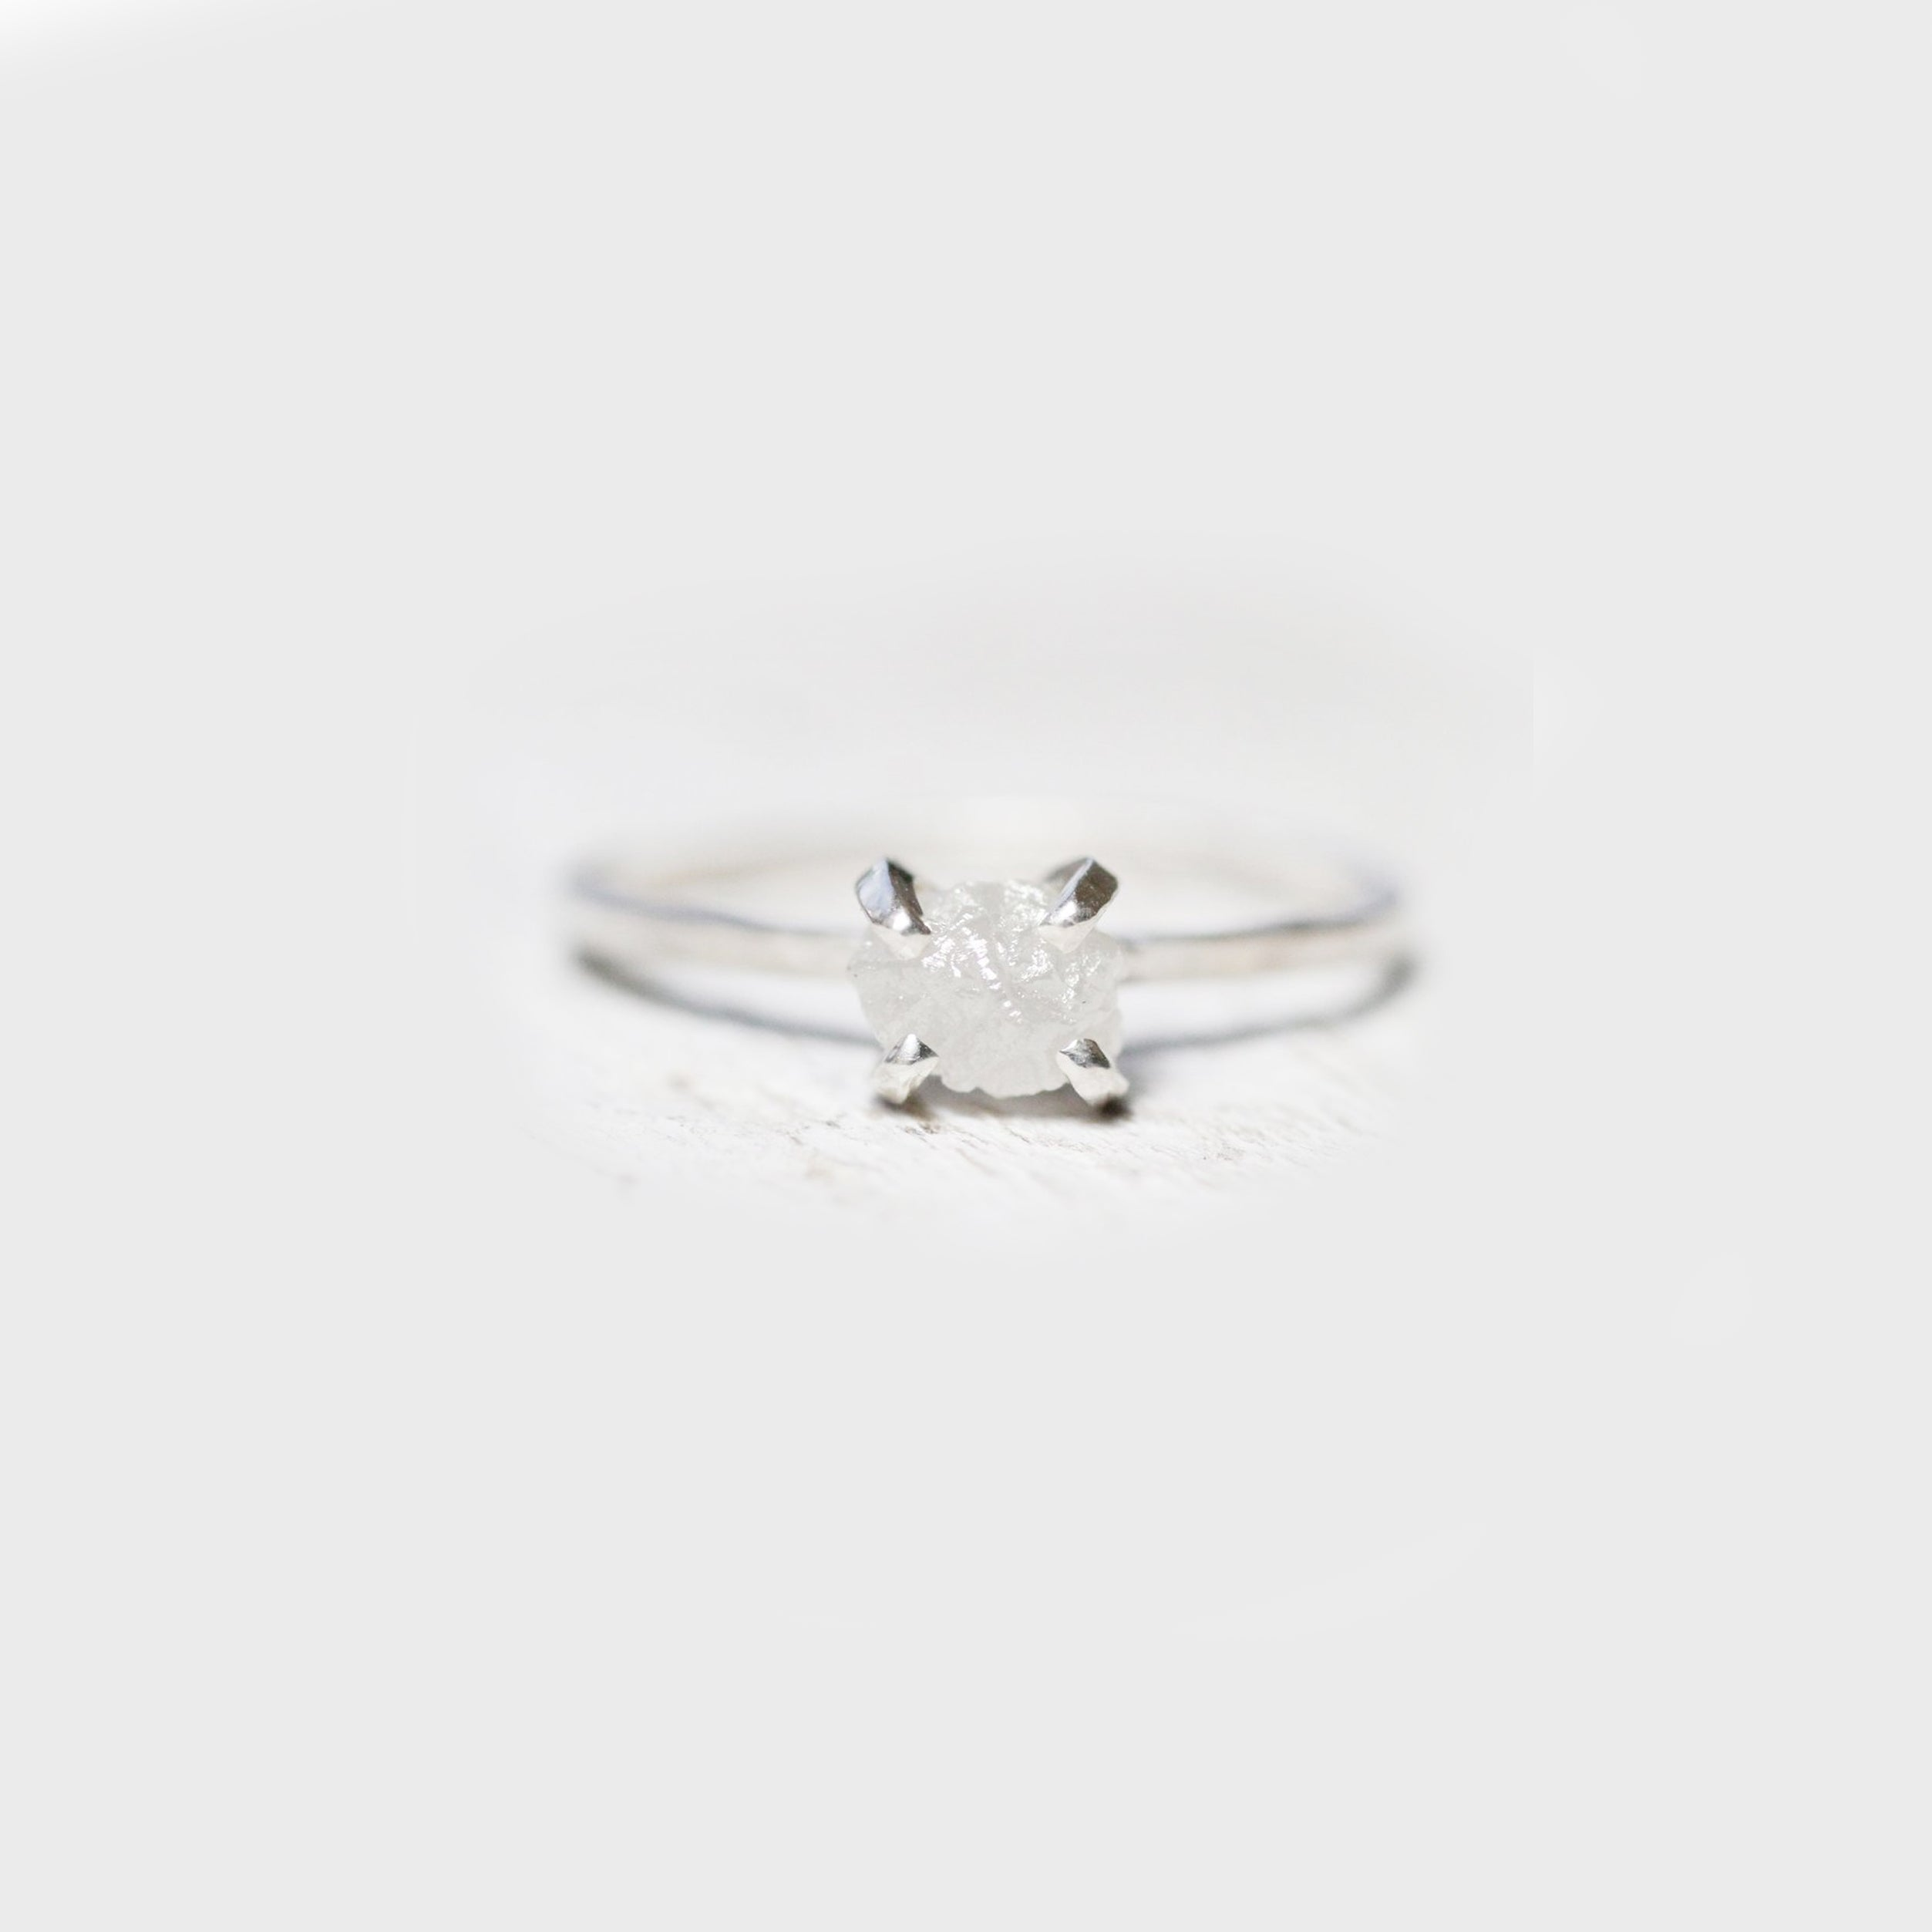 Rough Diamond Solitaire Ring - Gold / Sterling - Ethically Sourced - Celestial Diamonds ® by Midwinter Co.